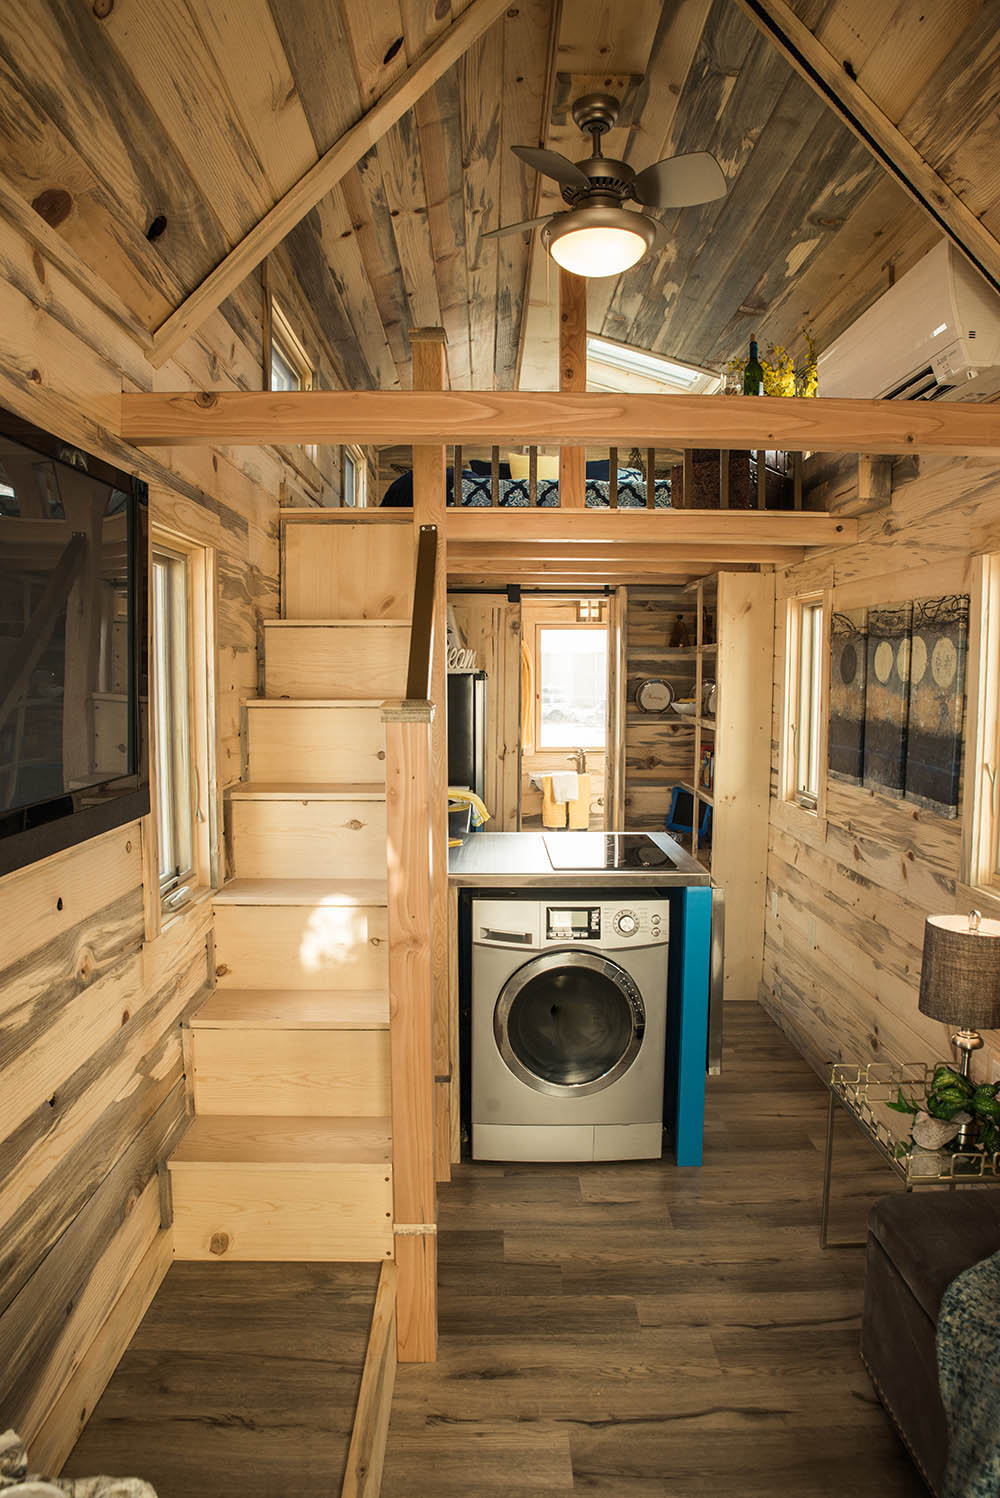 Katrina 39 s tumbleweed health coach reinvents her life with for Tiny house interieur